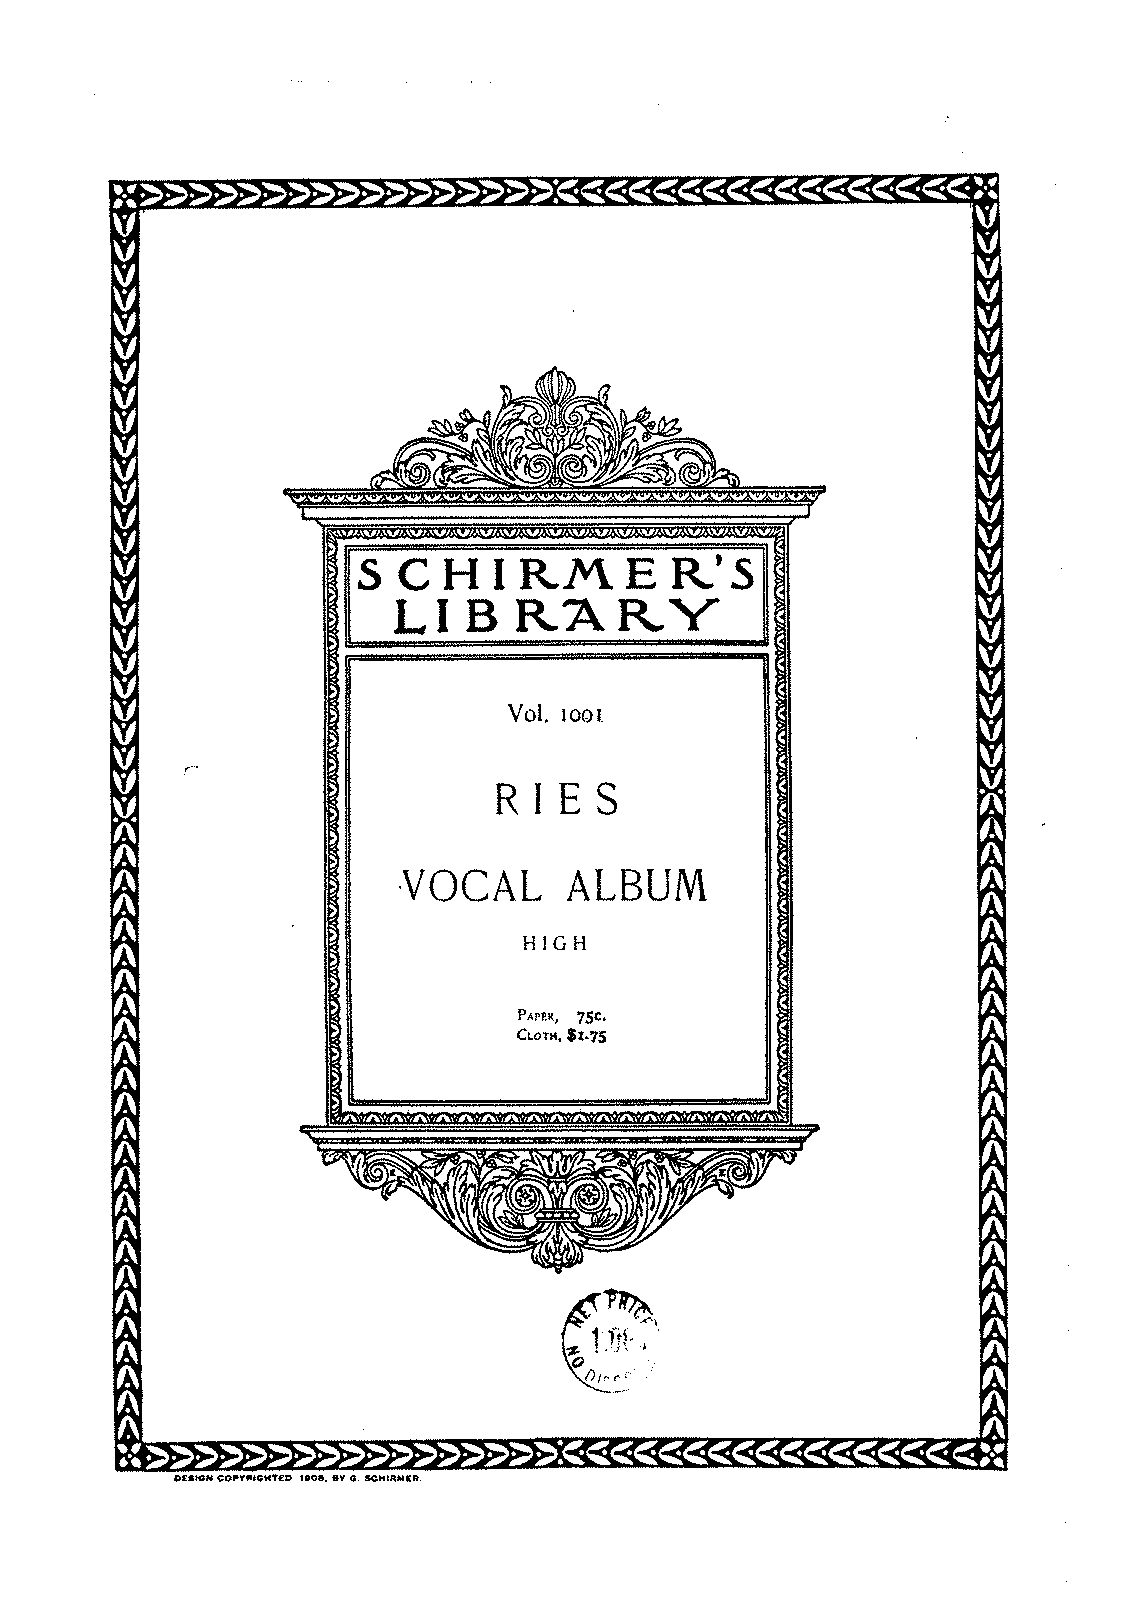 SIBLEY1802.19389.cabb-39087012014074vocal.pdf